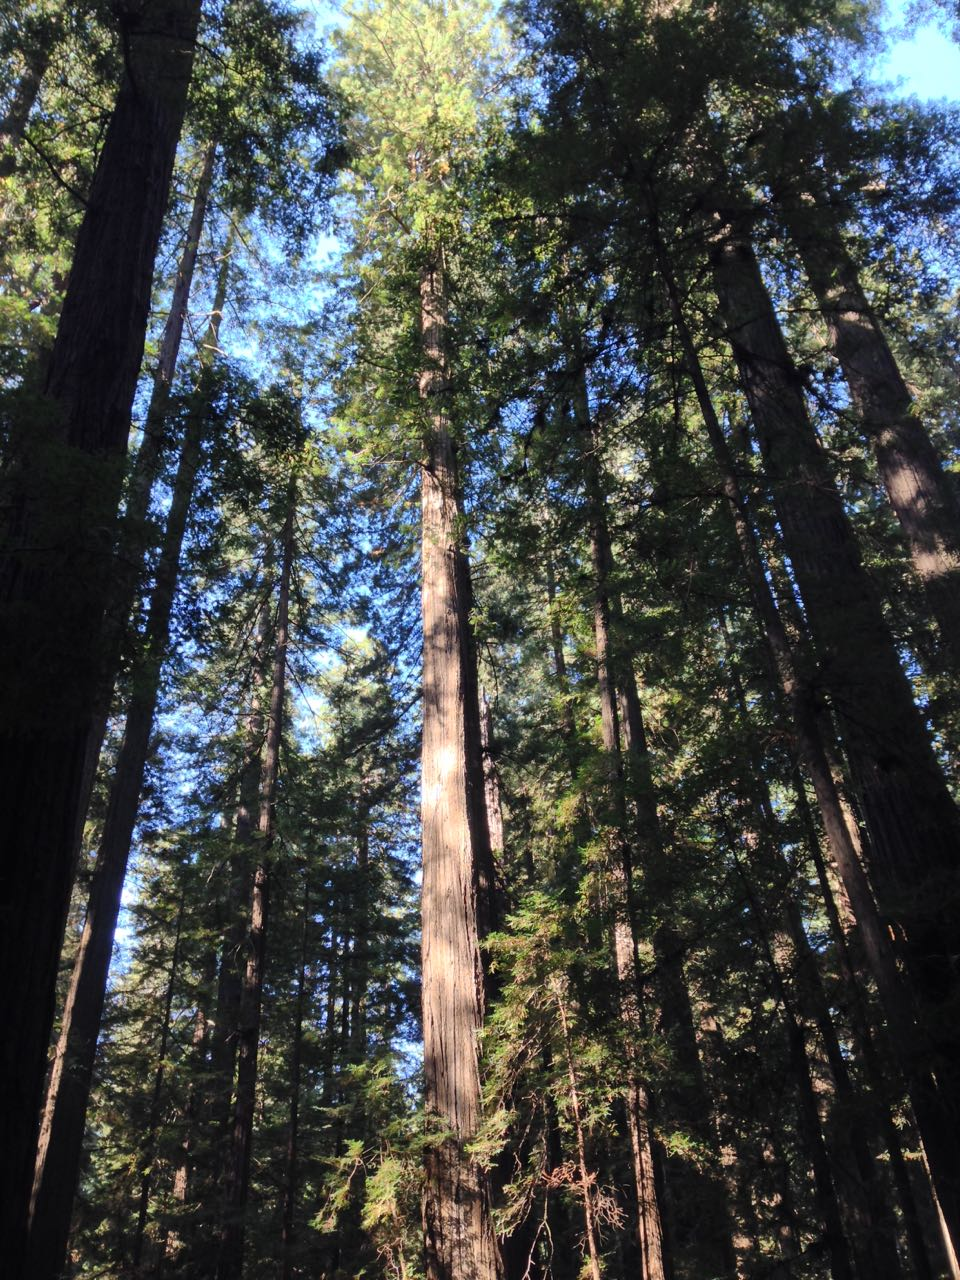 Redwoods 2017 10 01 18 Of 244